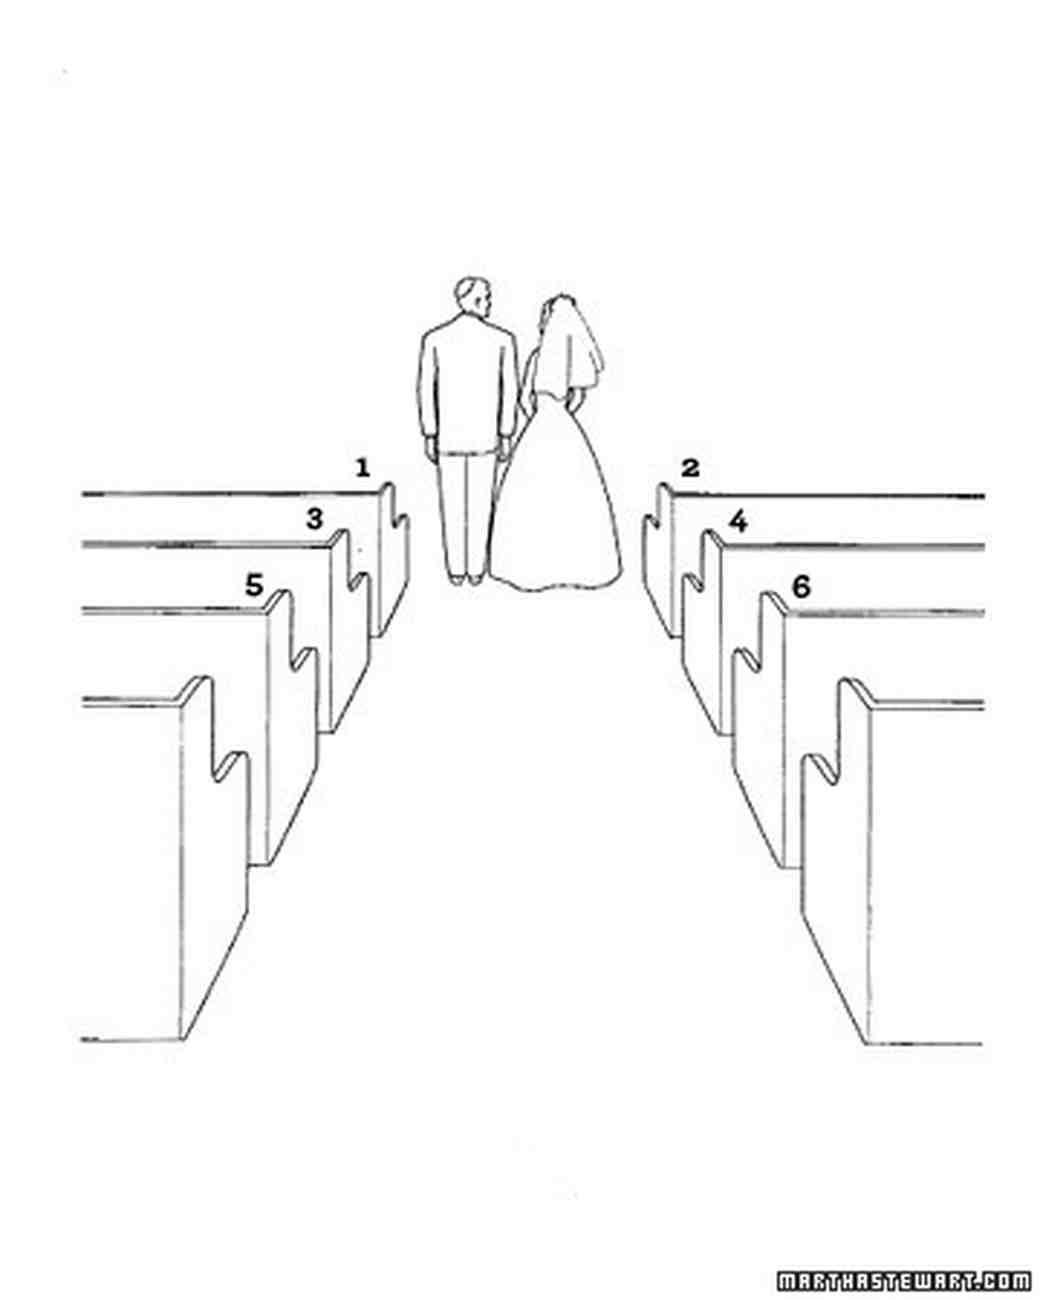 Diagram Your Big Day: Jewish Wedding Ceremony Basics